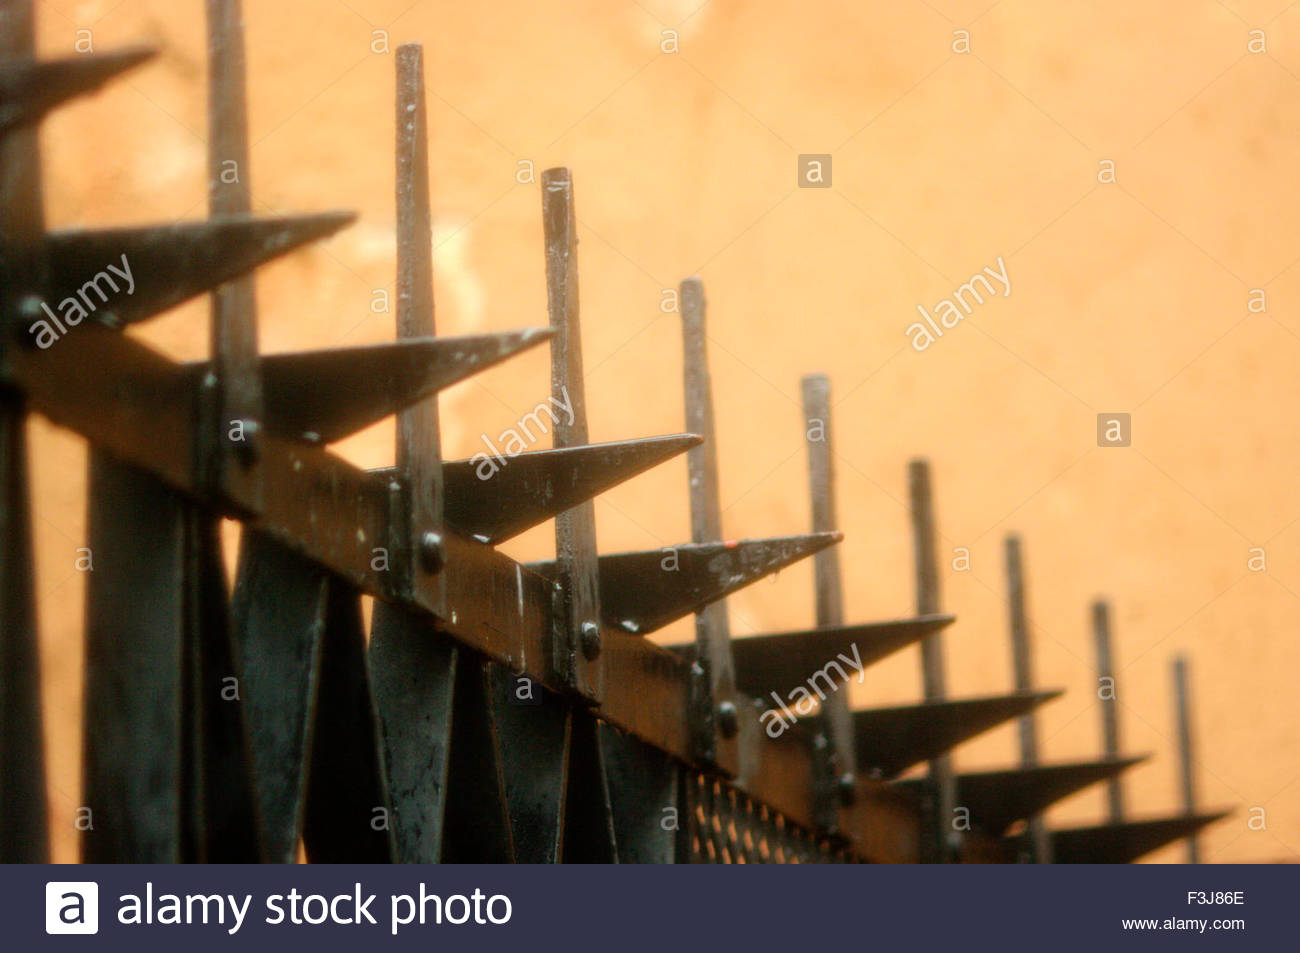 Railing Spikes Stock Photos & Railing Spikes Stock Images - Alamy